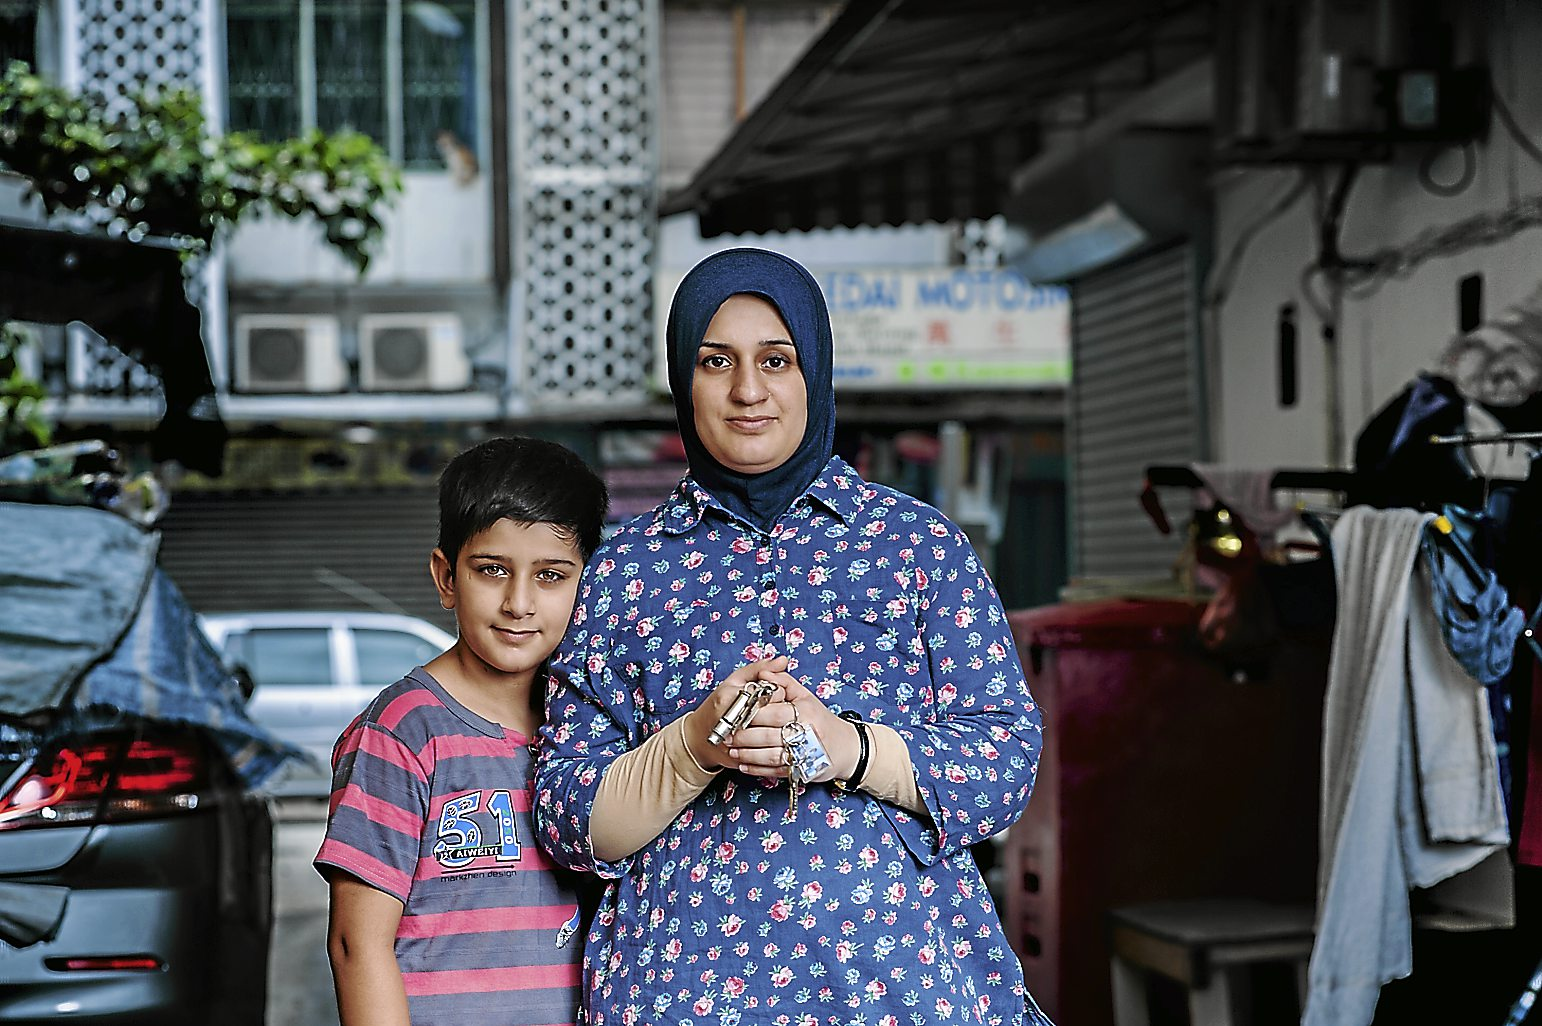 When 36-year-old Shaima fled from Iraq with her husband and four children, she took took with her many practical and valuable items including important documents and education records. But she sheepishly showed her set of car keys and house keys as her most prized possessions.â؟؟I know itâ؟؟s stupid. My car is stolen by now, my house is looted and seized by the authorities. It is no longer my house. But I couldnâ؟؟t help taking these keys,â؟ she said. â؟؟They remind me of my life, the life I want to go back to.â؟؟I desperately want to go home again, and to go back to my old life,â؟ said Shaima who thinks often of her family in Iraq, and wishes to see them again. They had a comfortable life working in the corporate sector before troubles began for them in Iraq and they were forced to flee. â؟؟I want to start a new life in safety. My husband has diabetes and I want to be somewhere where he can get proper treatment. And I want my children to get the education they need to succeed in this new society,â؟ sai